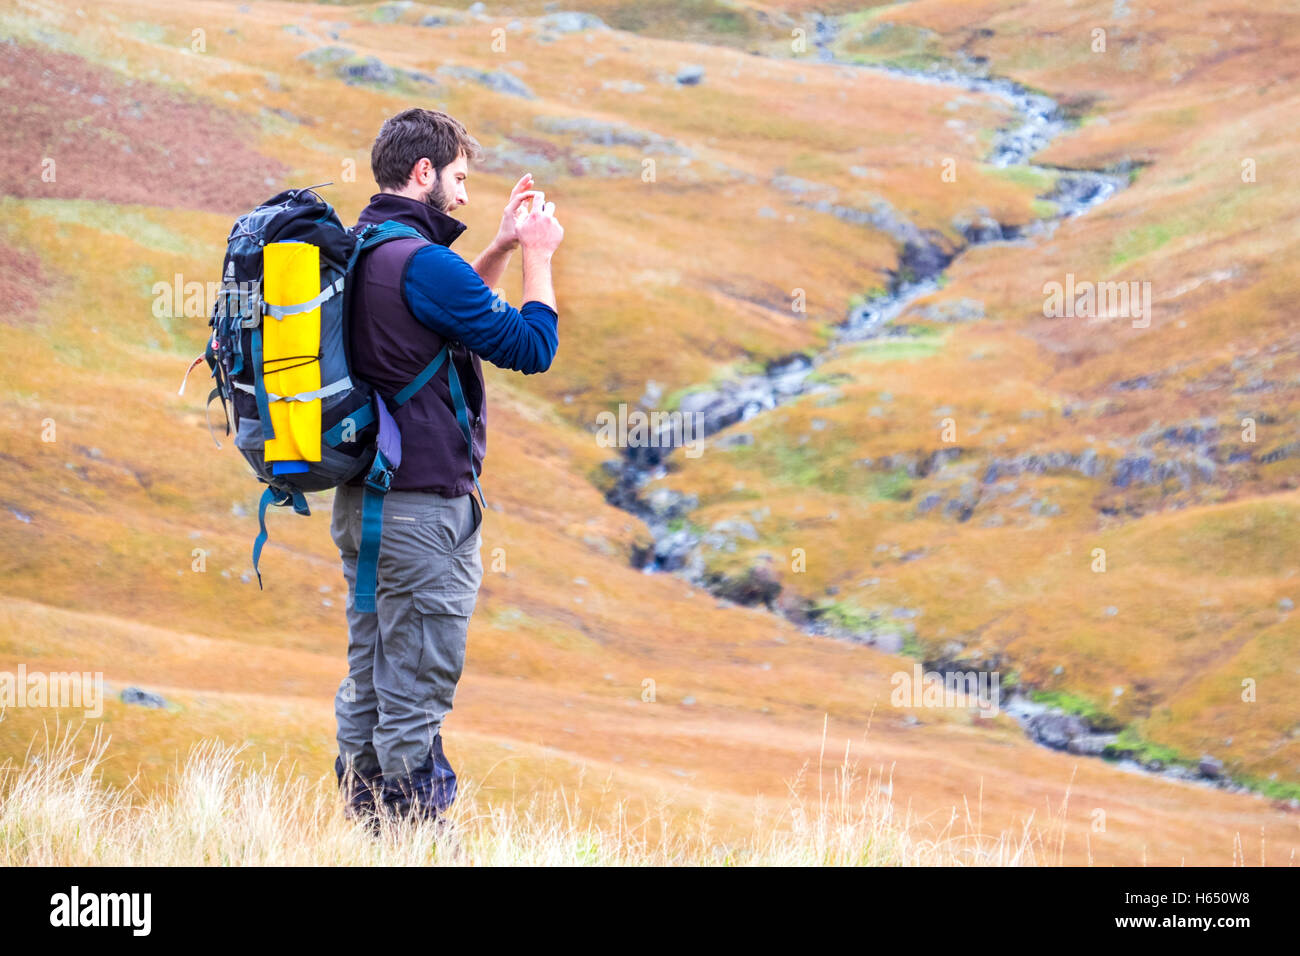 Male in his mid-twenties hill-walking in the Lake District, taking a photo with a smart phone - Stock Image